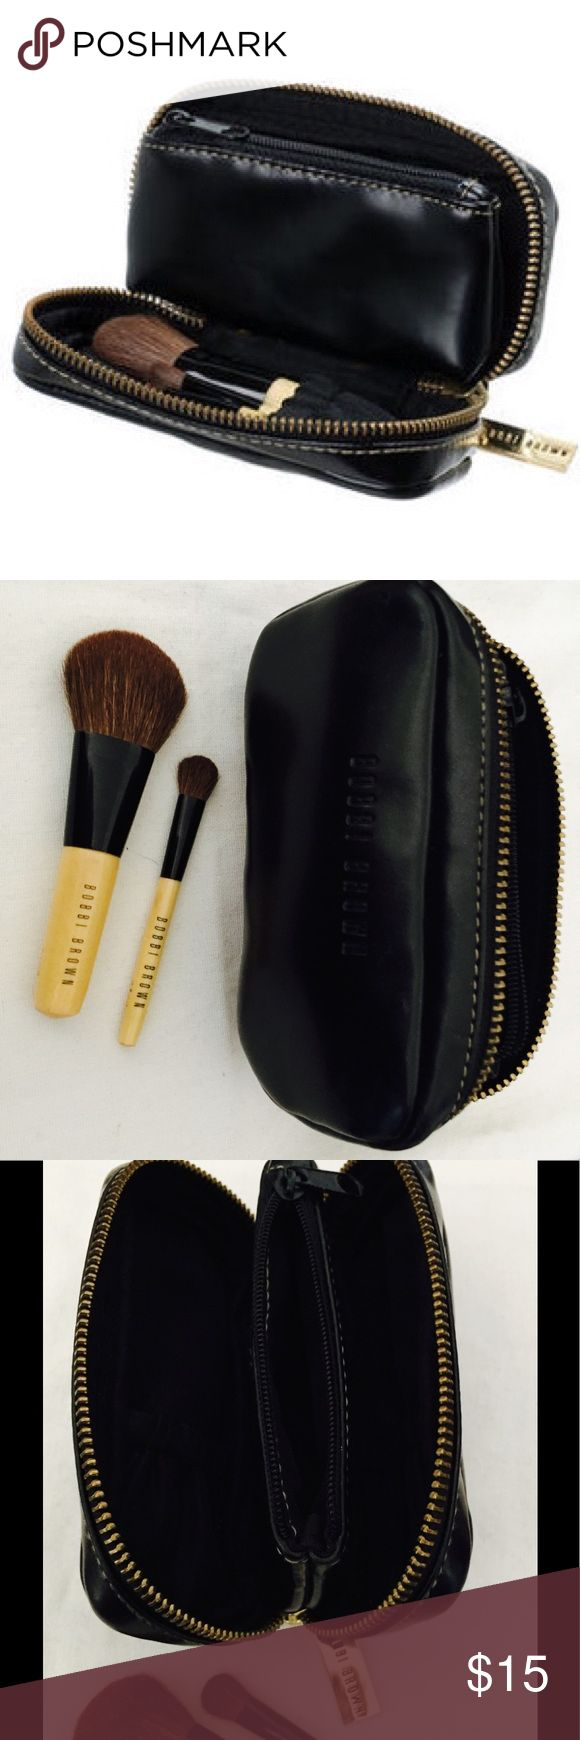 Bobbi Brown Case with Mini Brush Set Bobbi Brown Mini Brush Set: Blush Brush + Eye Shadow Brush + Black Case  2pcs+ 1case This has been rolling around in my makeup drawer for a while. The brushes have not been used. Bobbi Brown Makeup Brushes & Tools